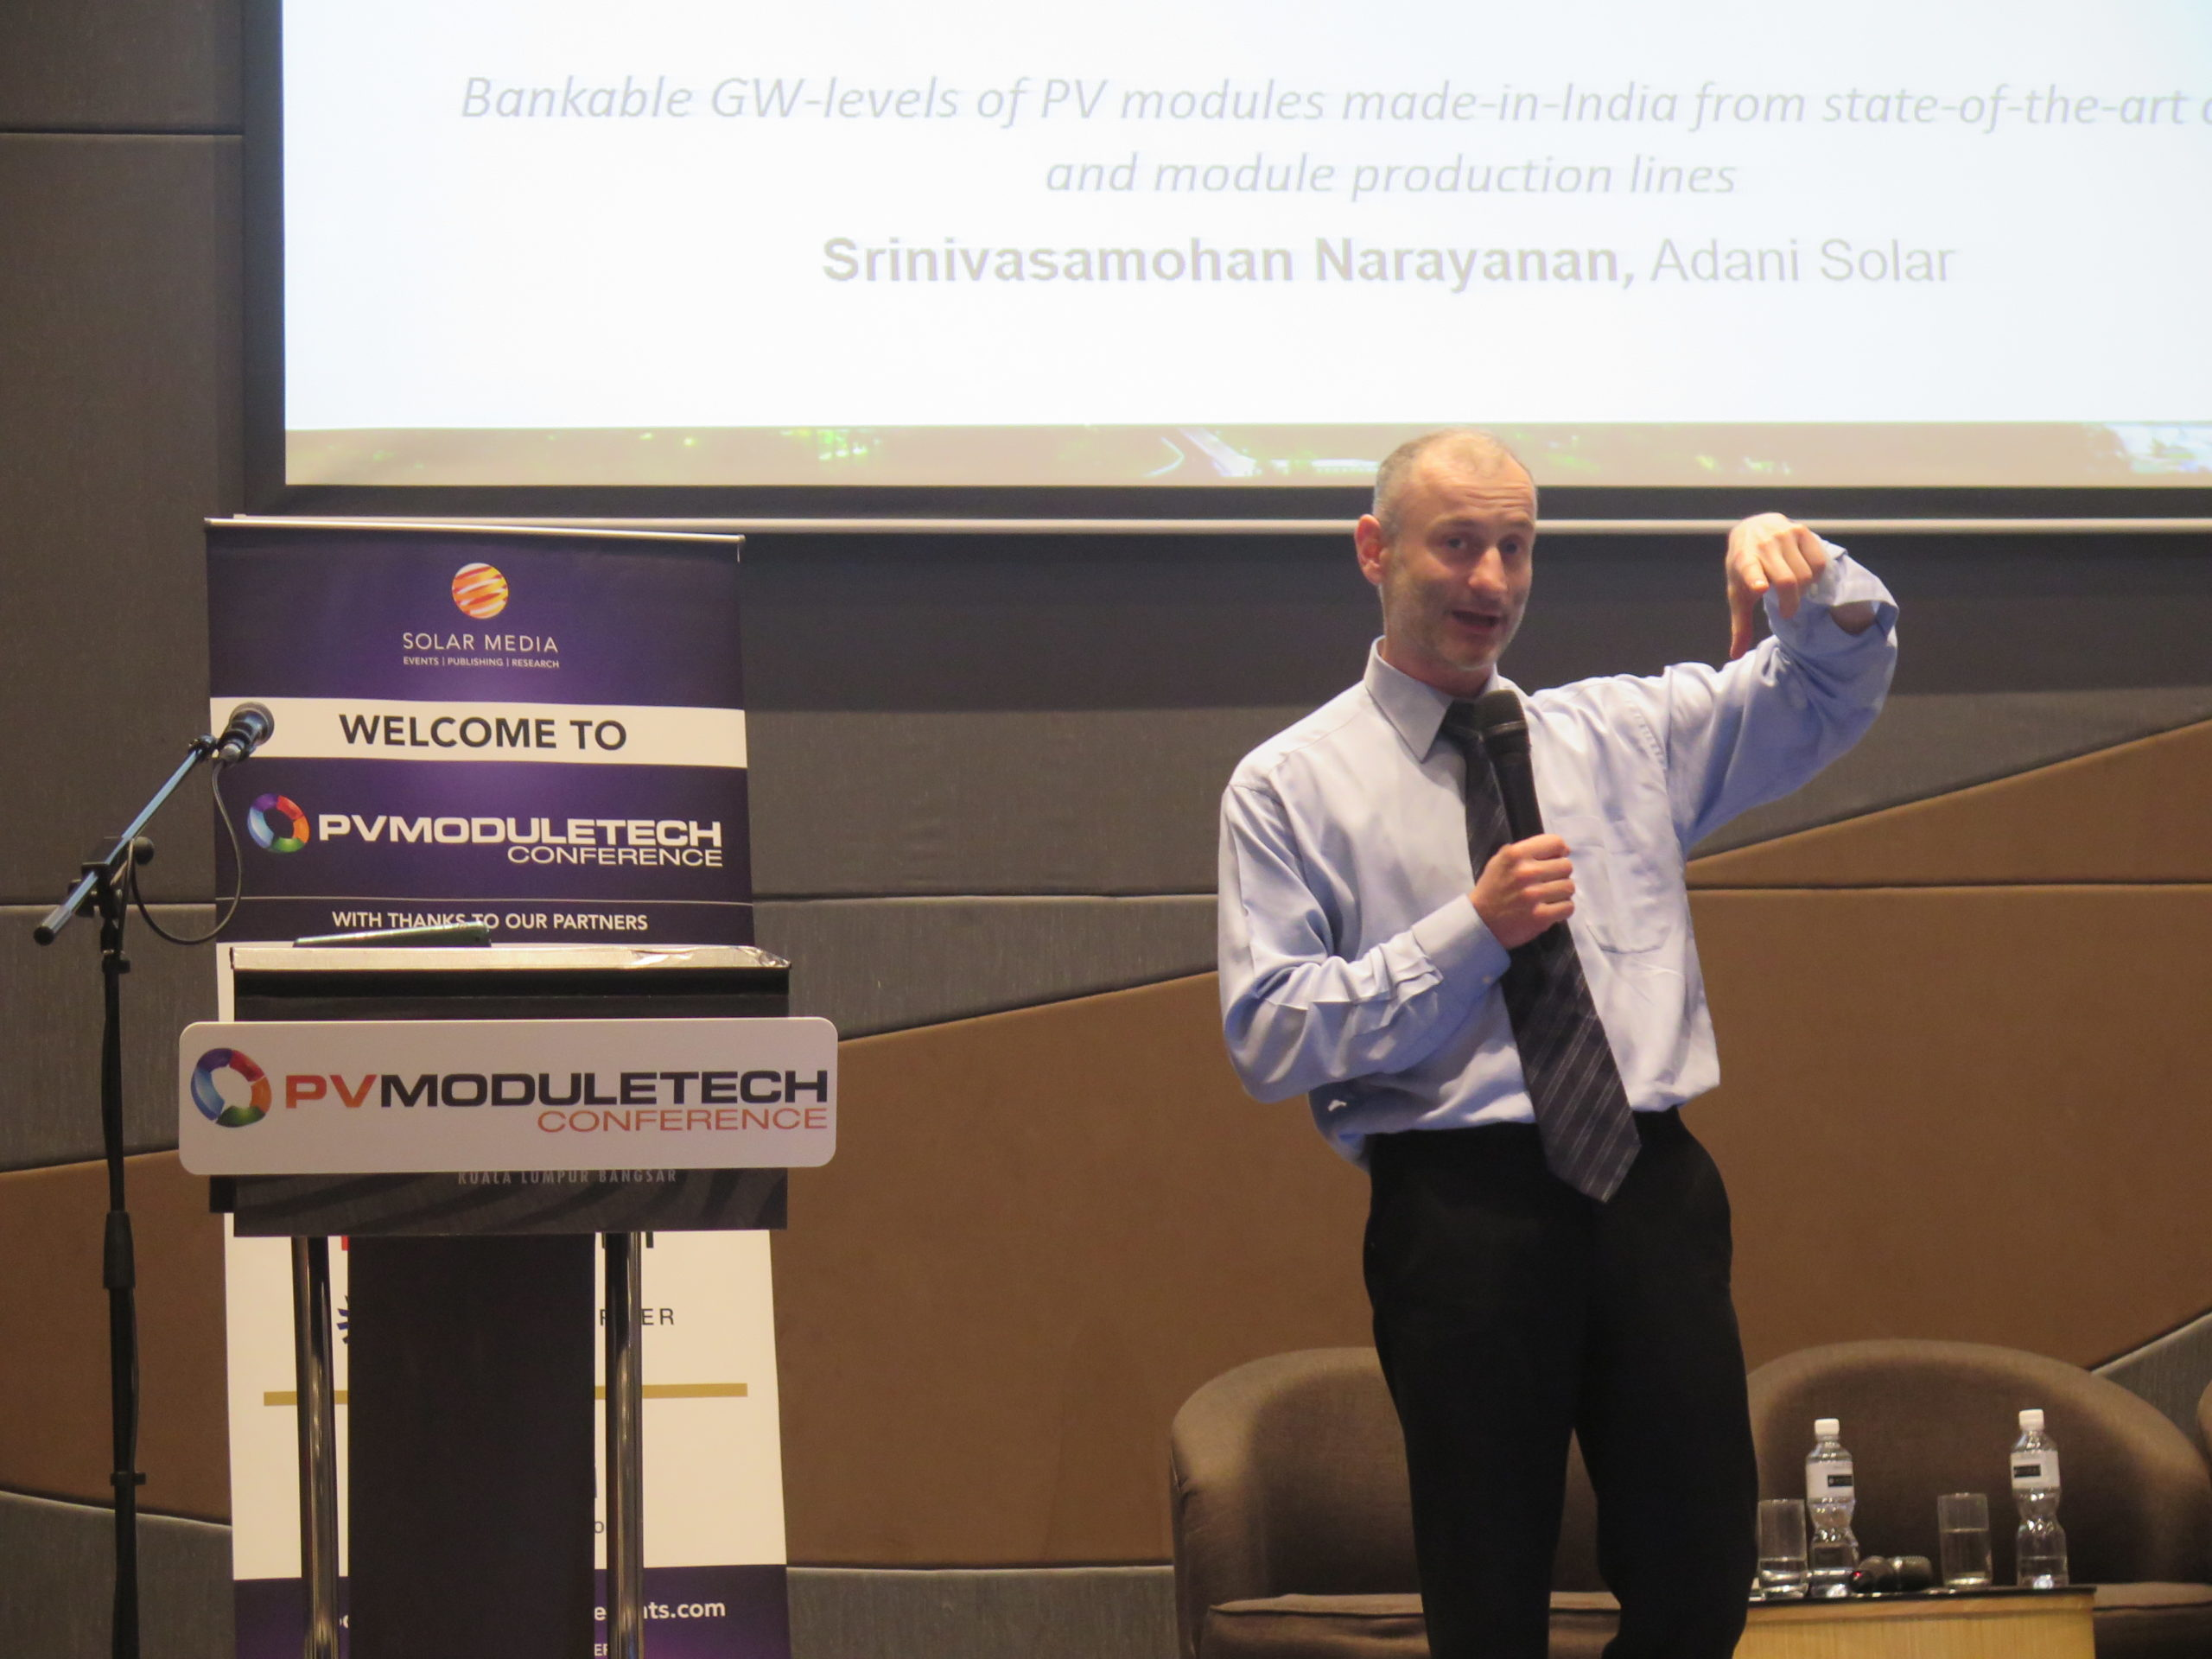 Finlay Colville, head of market research at Solar Media, on stage at PV ModuleTech 2017. Credit: Solar Media